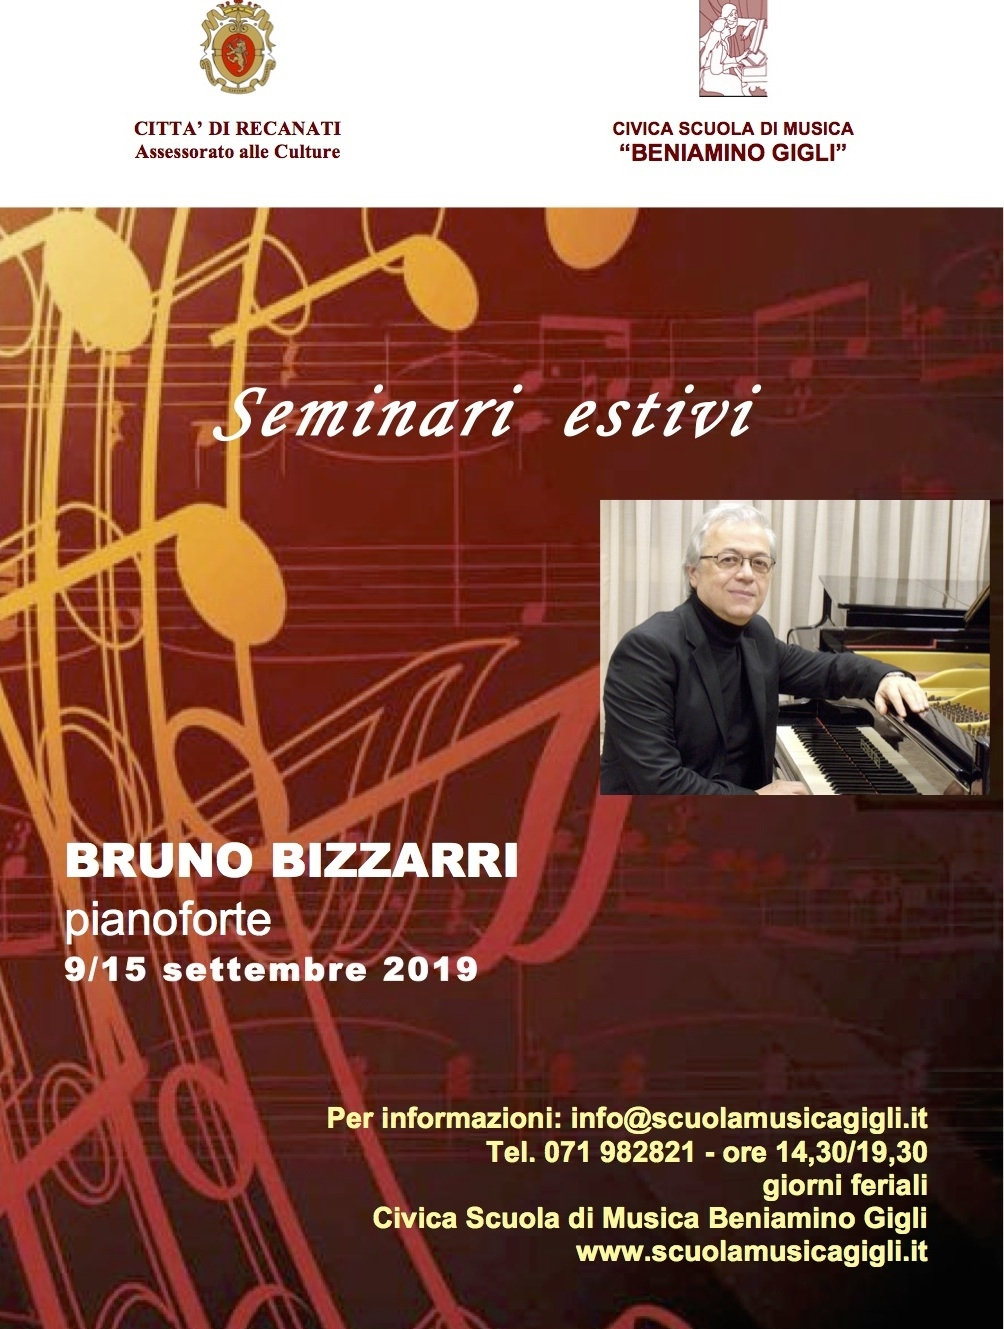 Bizzarri locand. 2019